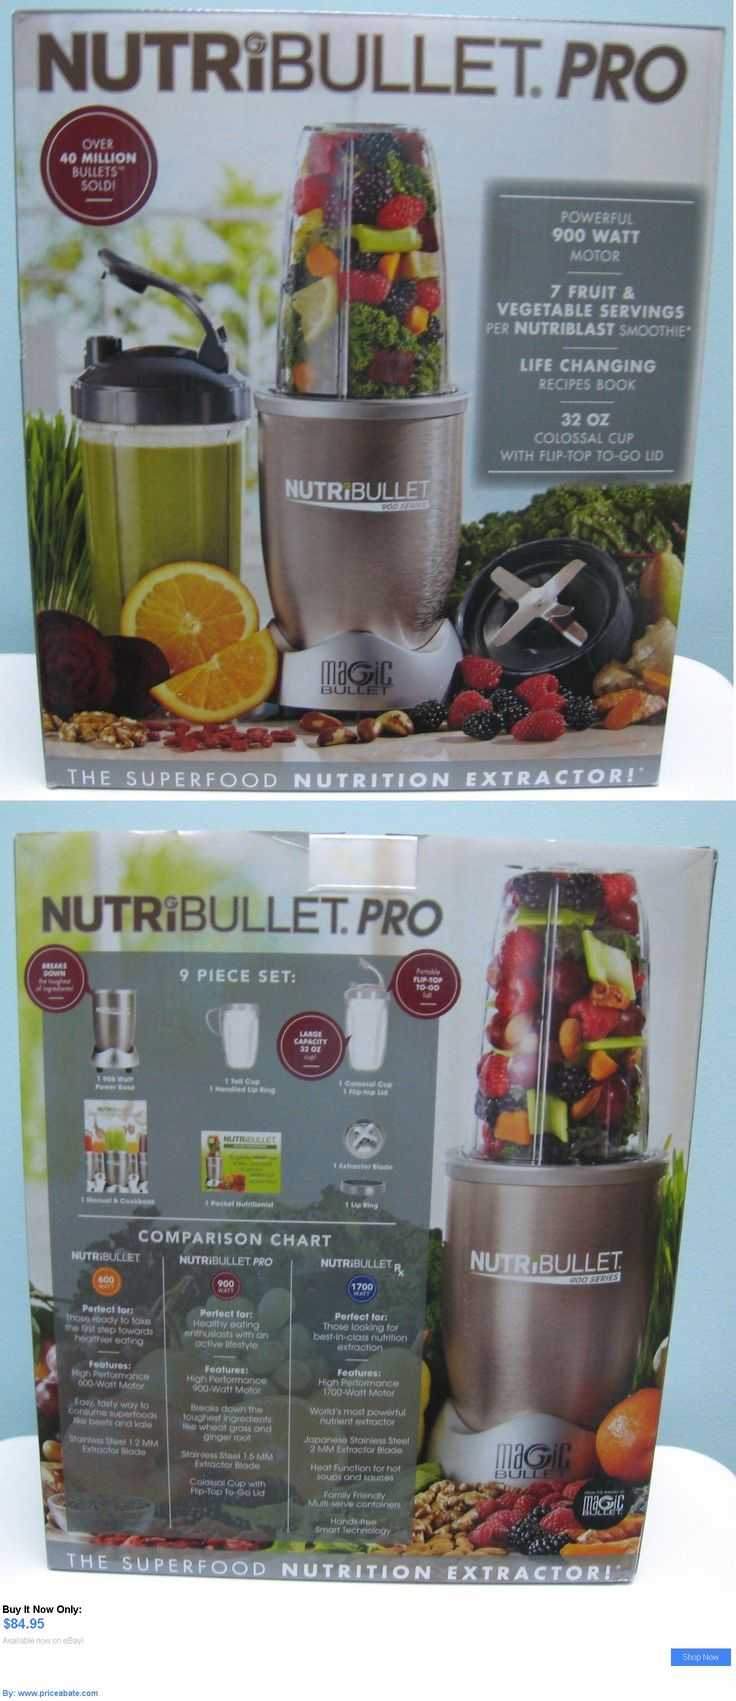 Small Kitchen Appliances: Nutribullet Pro 900 Blender Juicer Nb9-0901 9 Pc Set , New In Box BUY IT NOW ONLY: $84.95 #priceabateSmallKitchenAppliances OR #priceabate